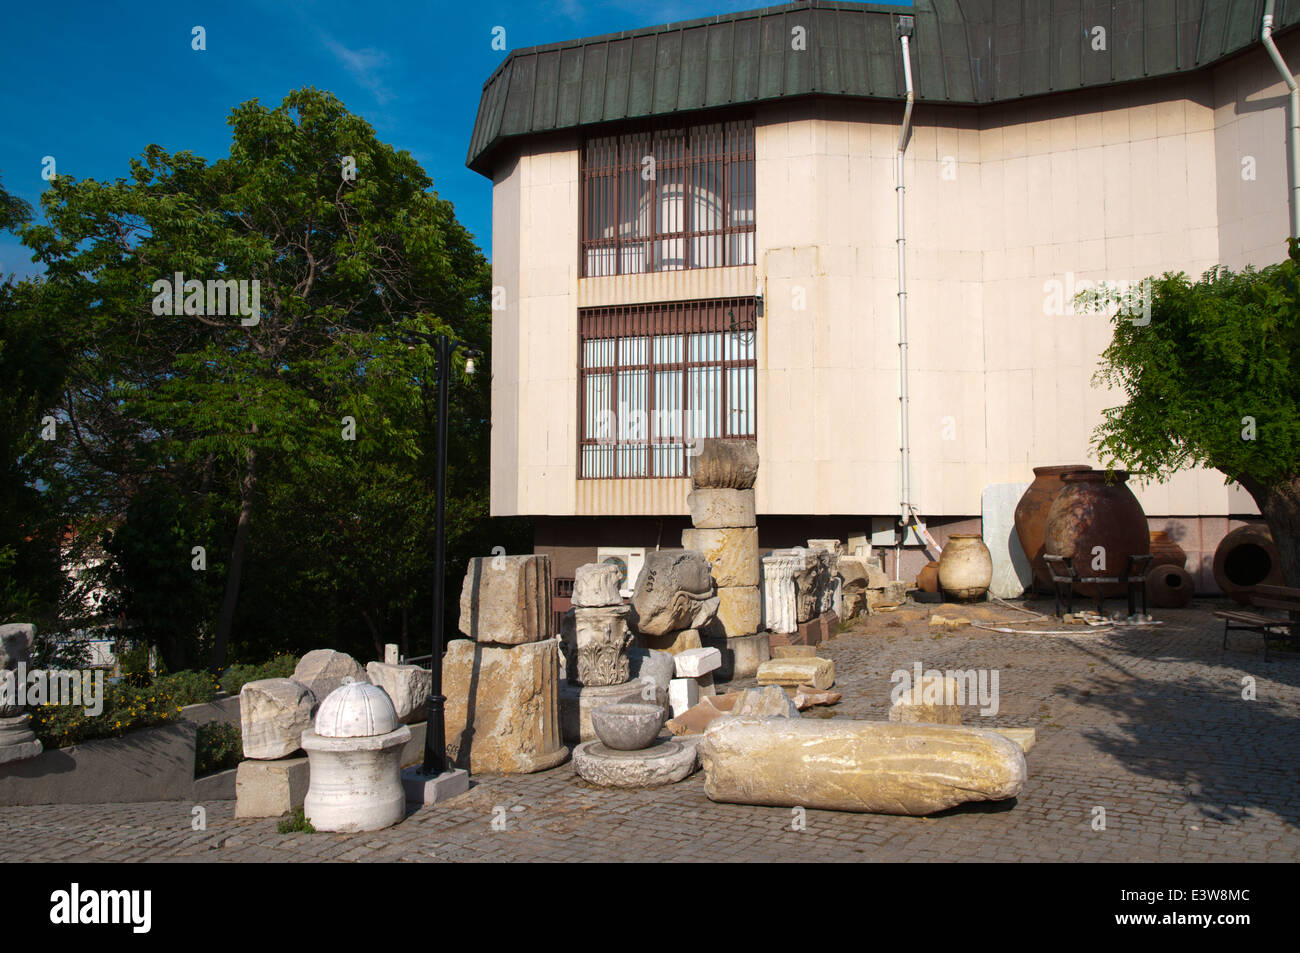 Archeological museum with exhibition outside, Izmir, Turkey, Asia Minor - Stock Image